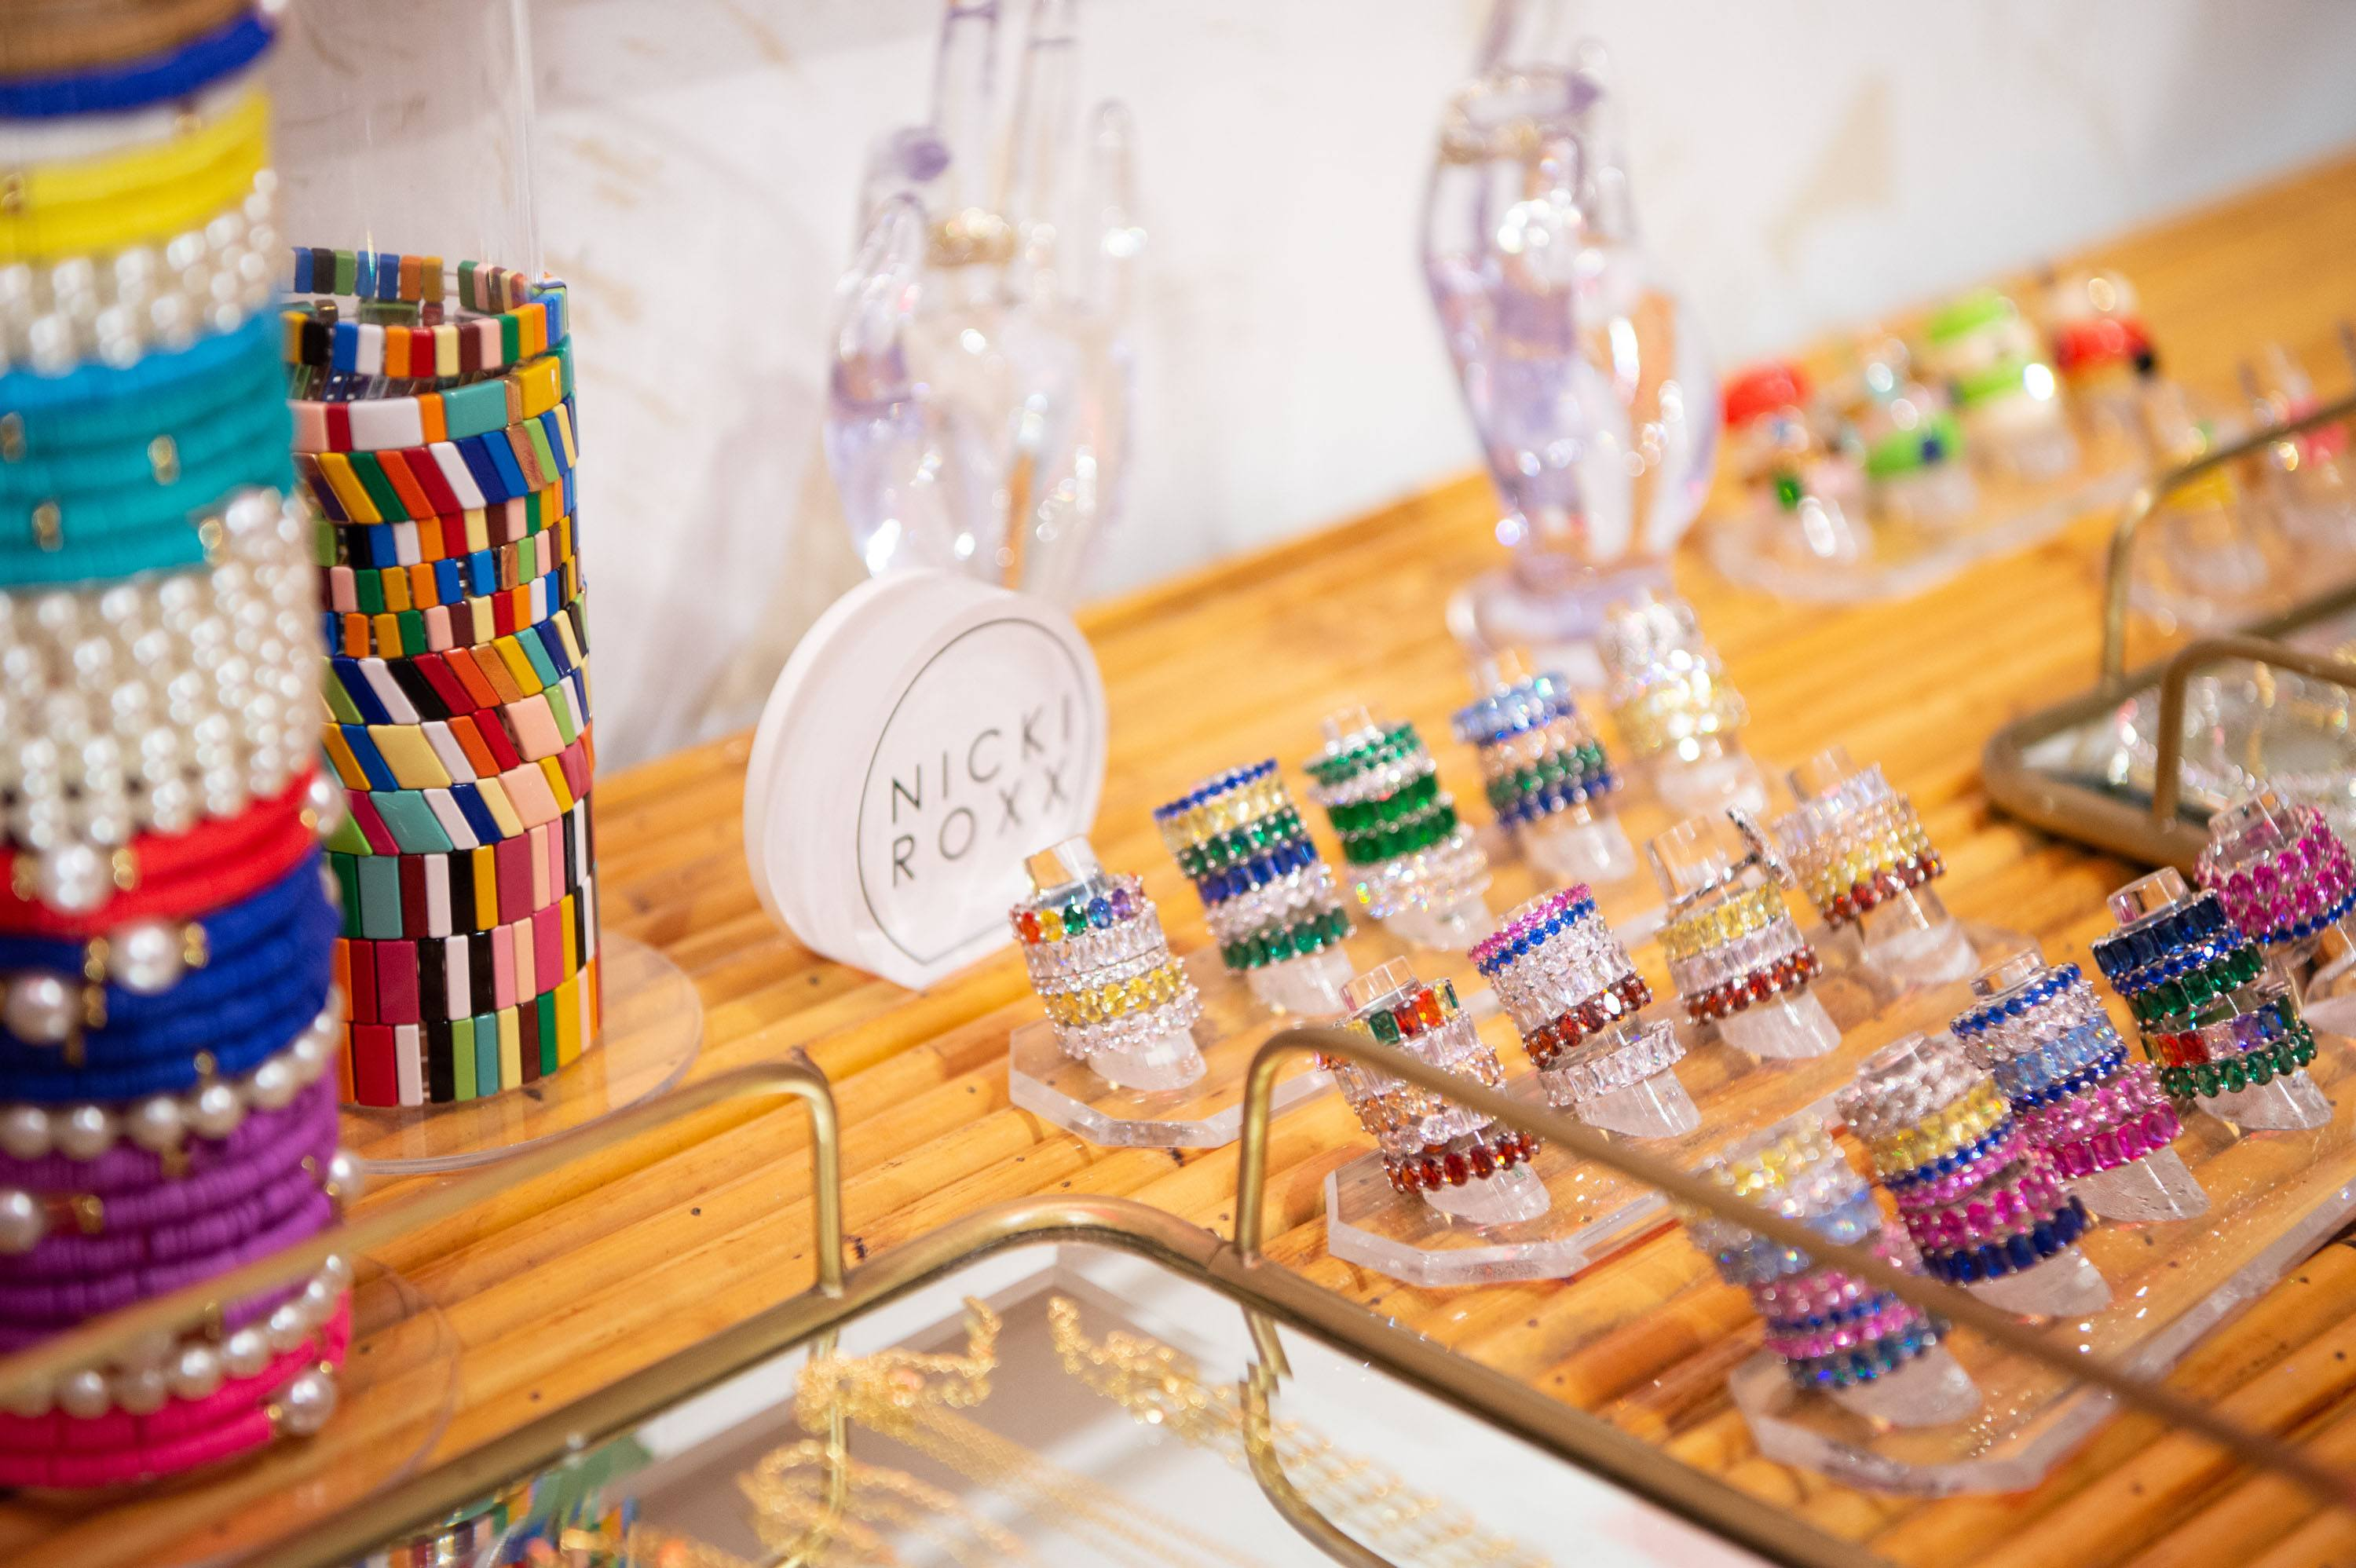 Nicki Roxx assorted jewelry pieces including rings, necklaces and bracelets